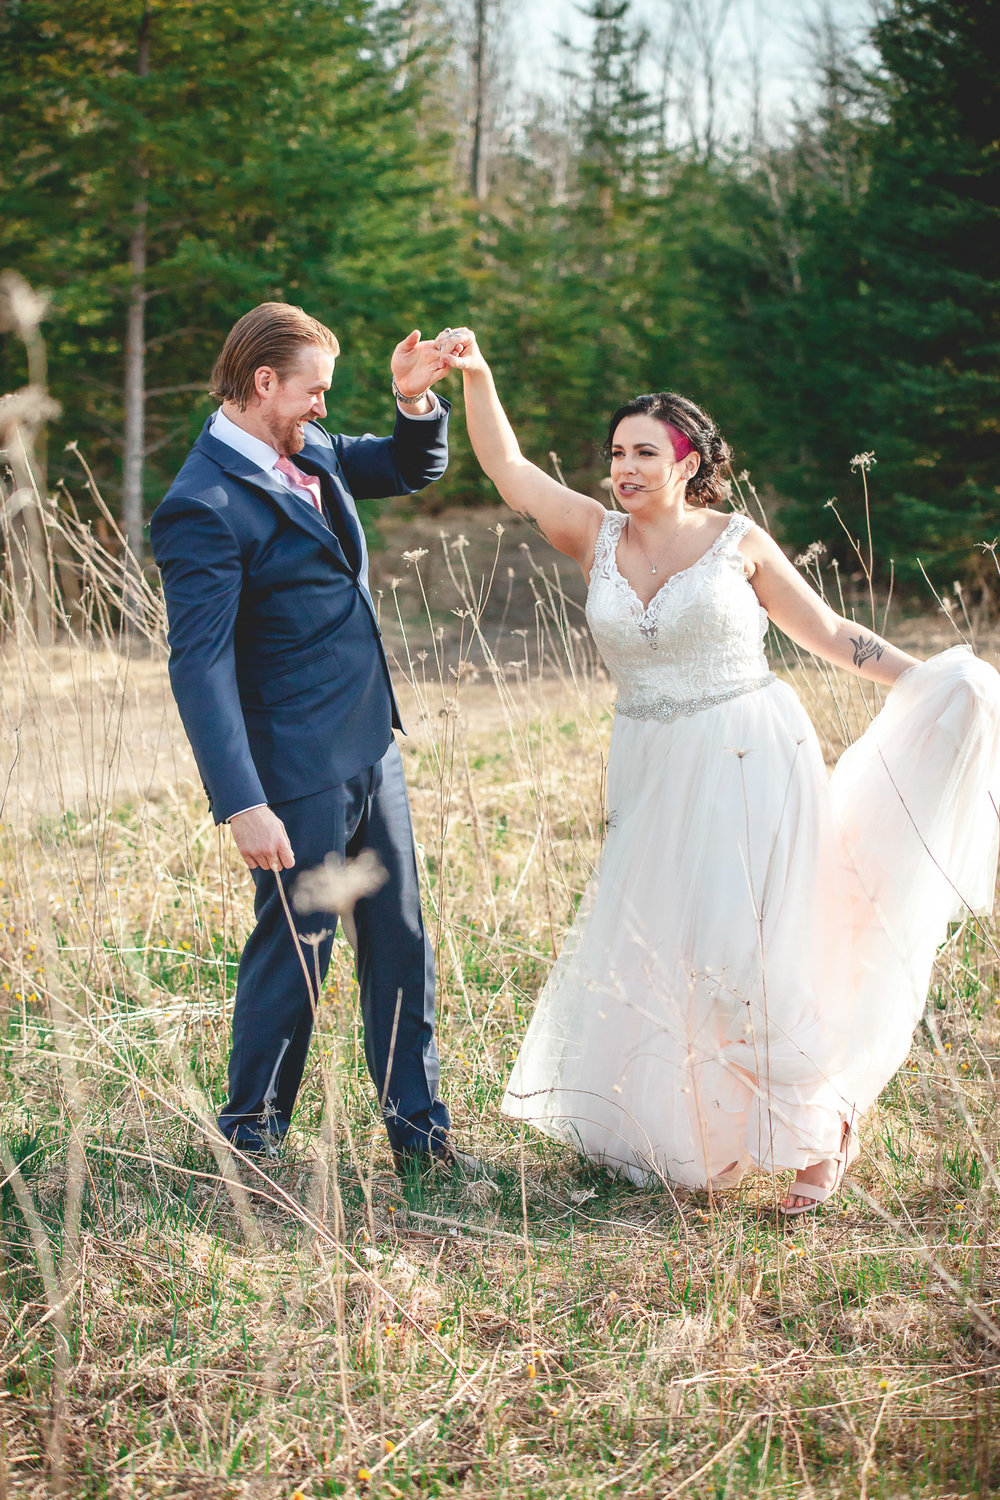 Amy D Photography- Bride and Groom-Barrie Wedding Photography Muskoka Wedding Photography Bride and Groom Poses Bride and Groom Train Tracks Snow Valley Wedding-89.jpg